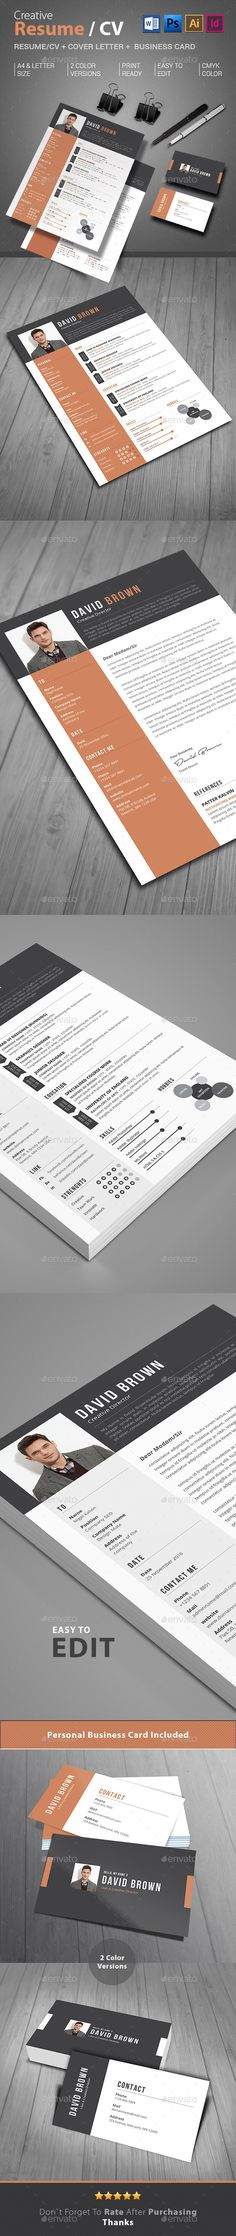 Resume Template PSD, Word Download here http\/\/graphicrivernet - http resume download